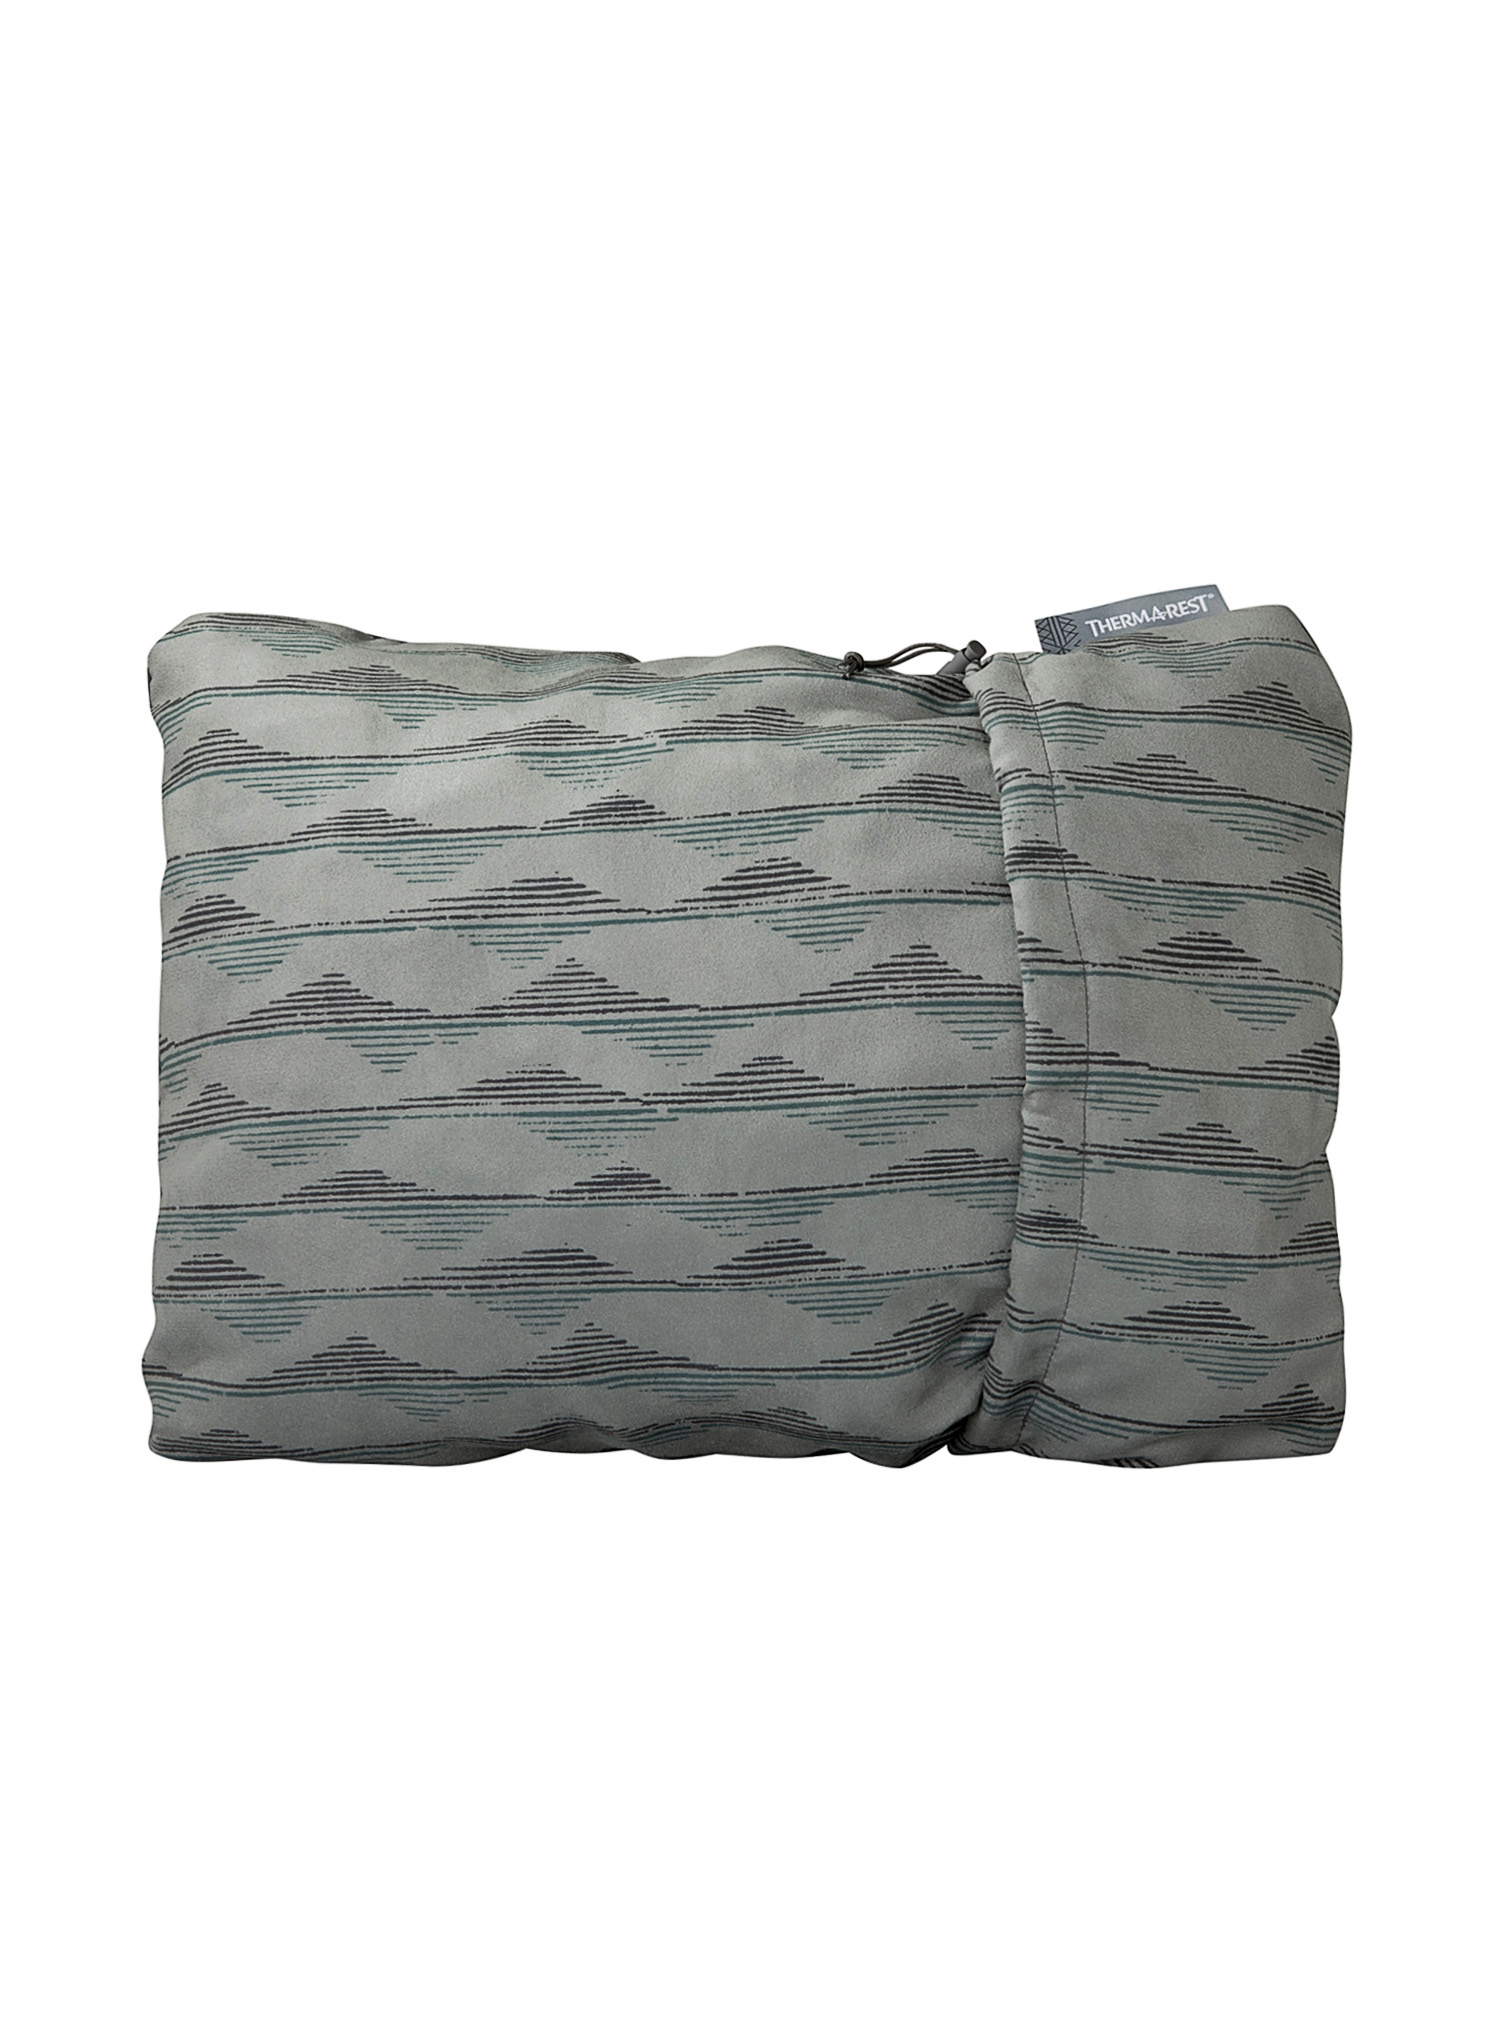 Poduszka Therm a Rest Compressible Pillow - gray mountains - zdjęcie nr. 1